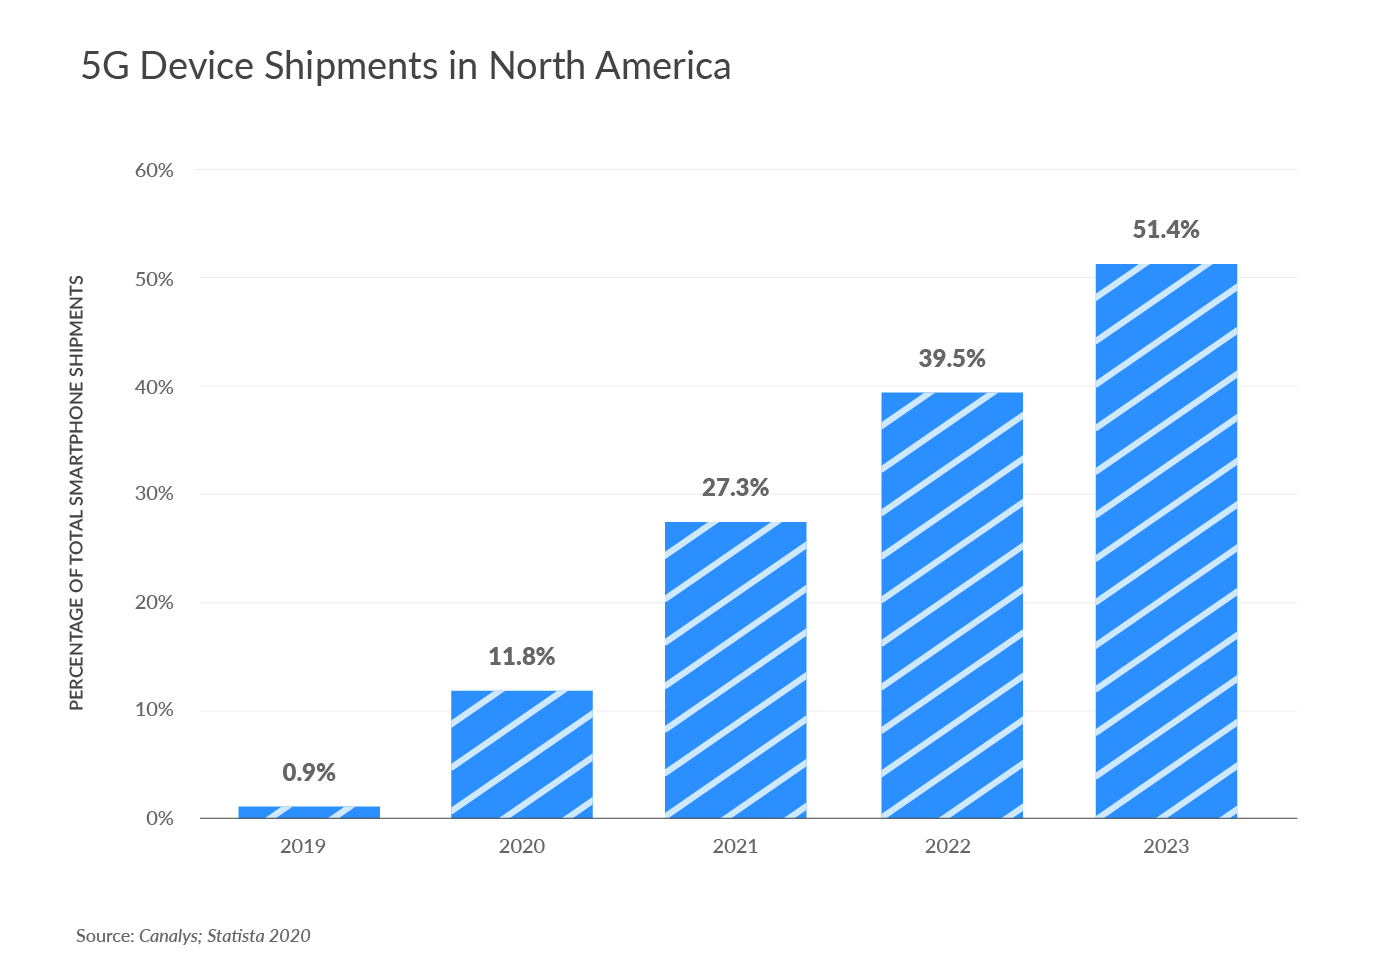 5G Device Shipments in North America